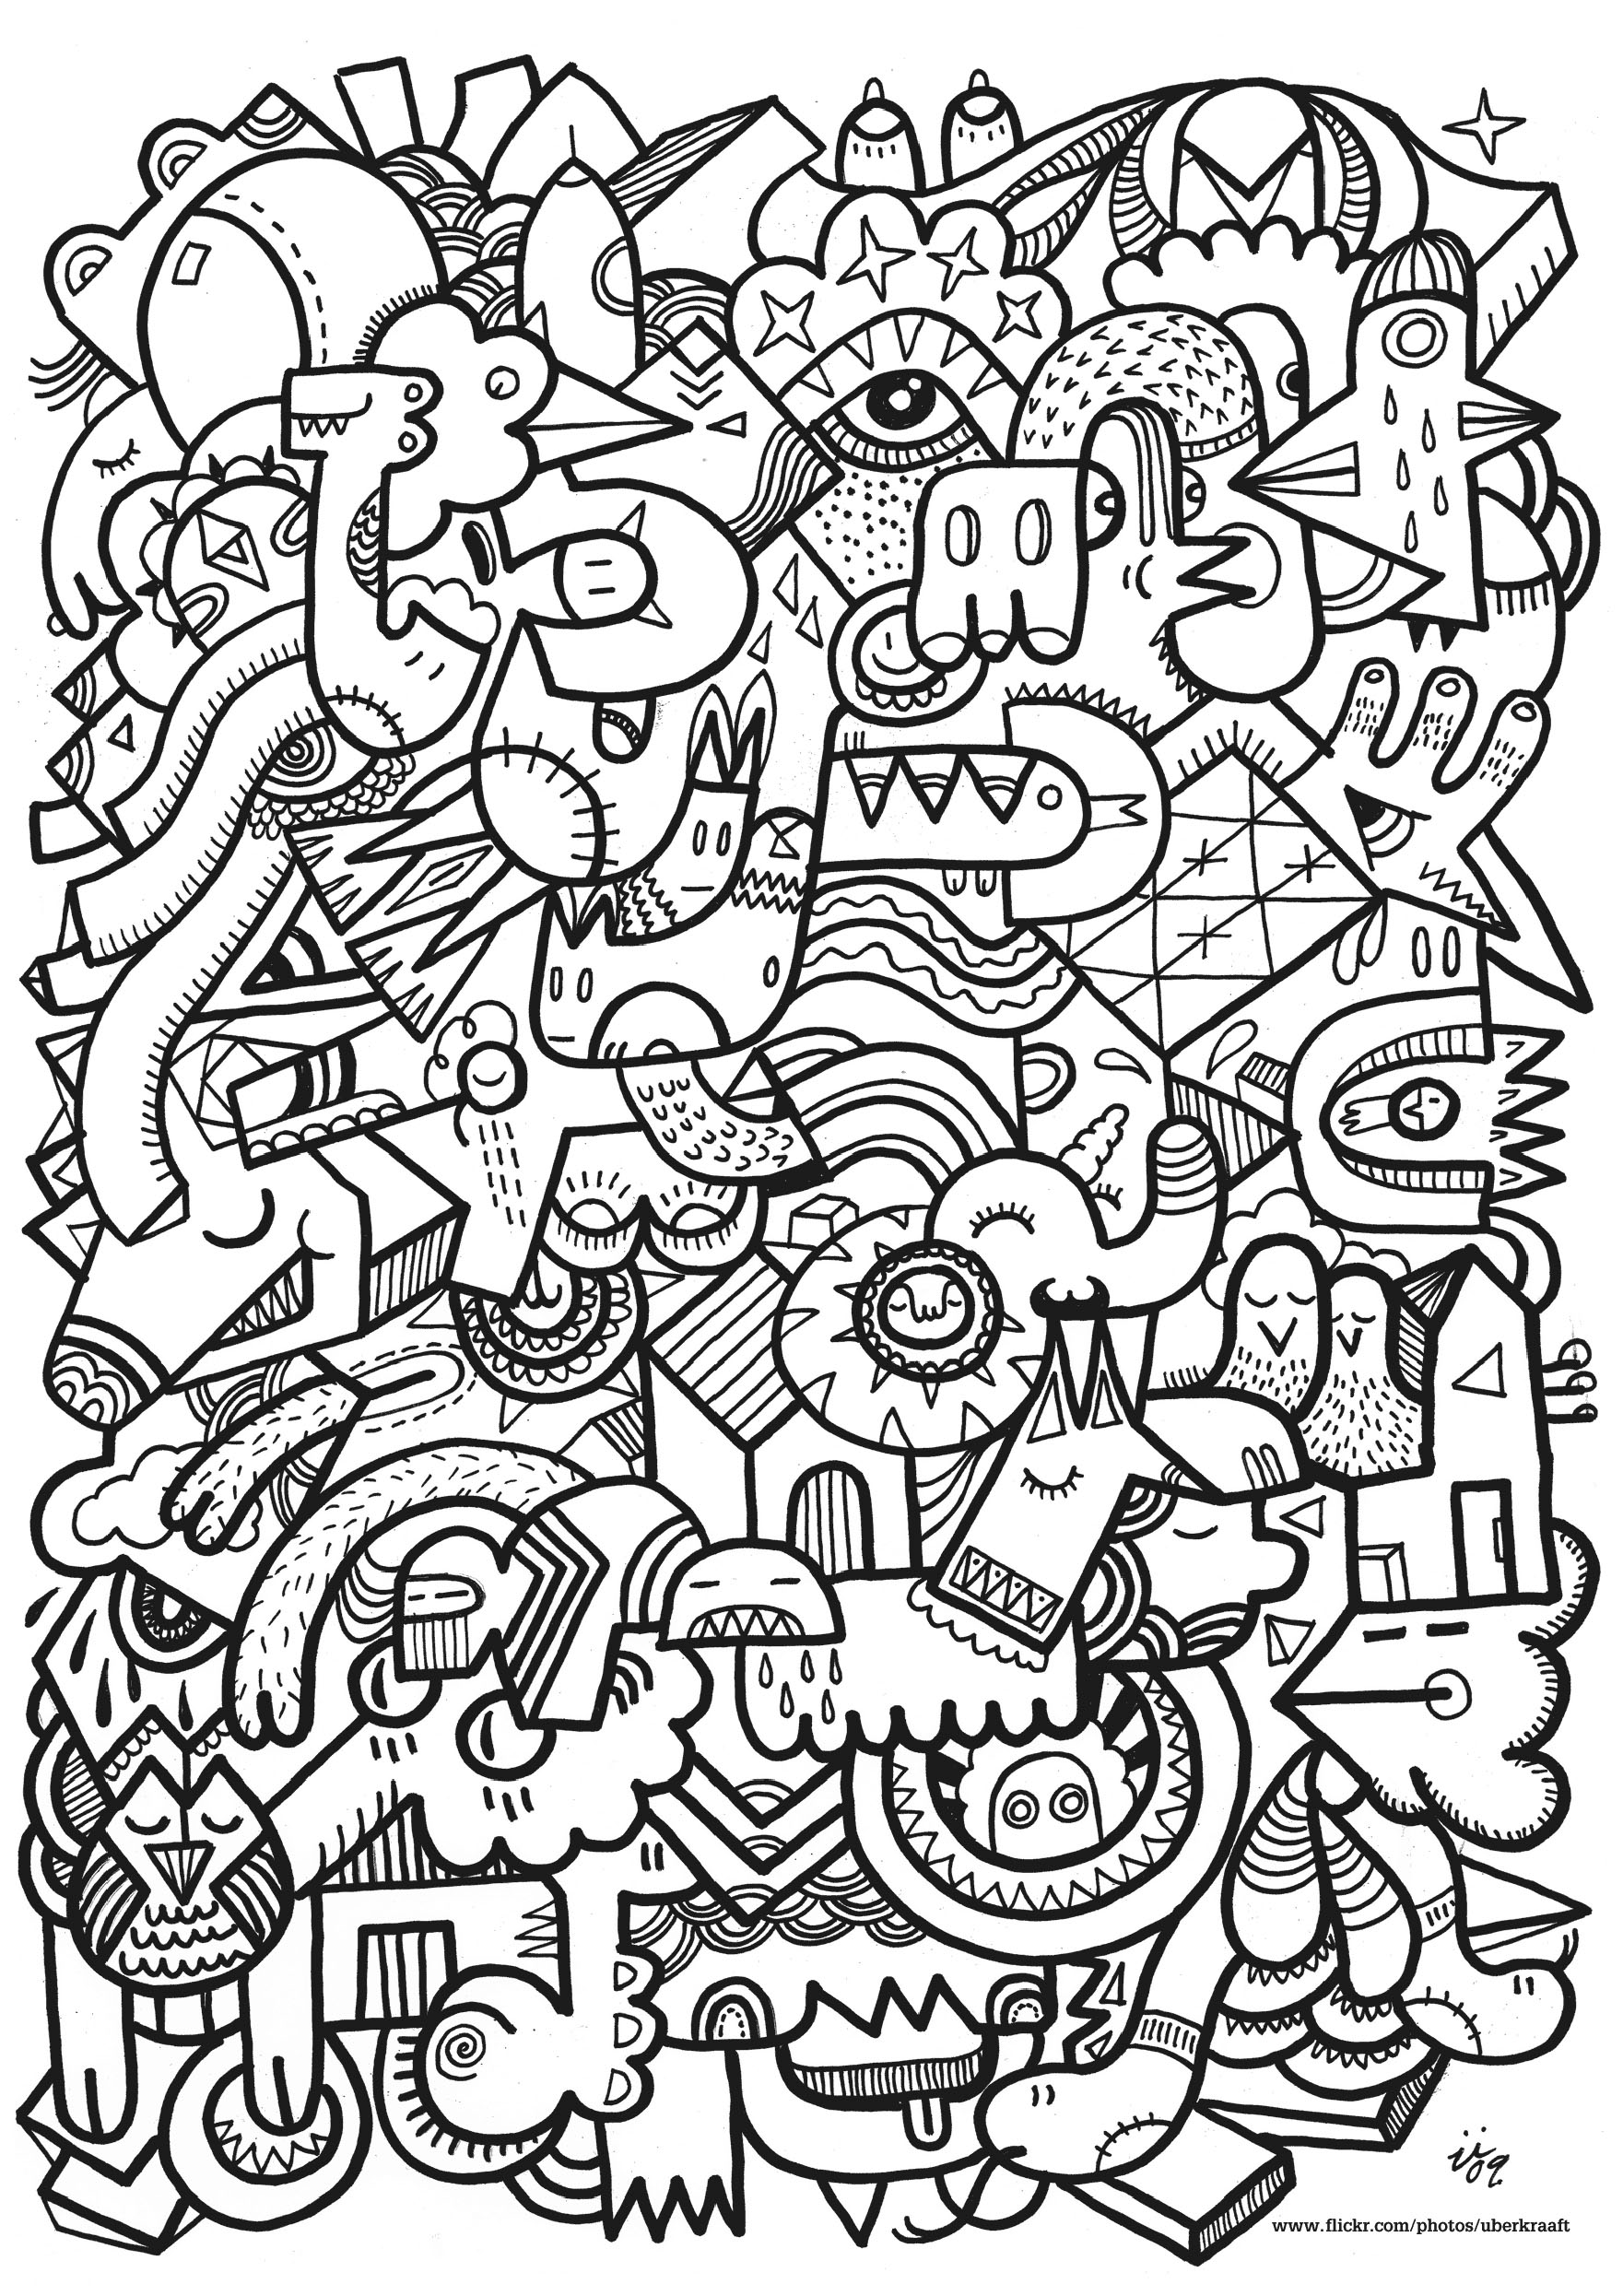 Complex Drawing With Different Doodle Creatures